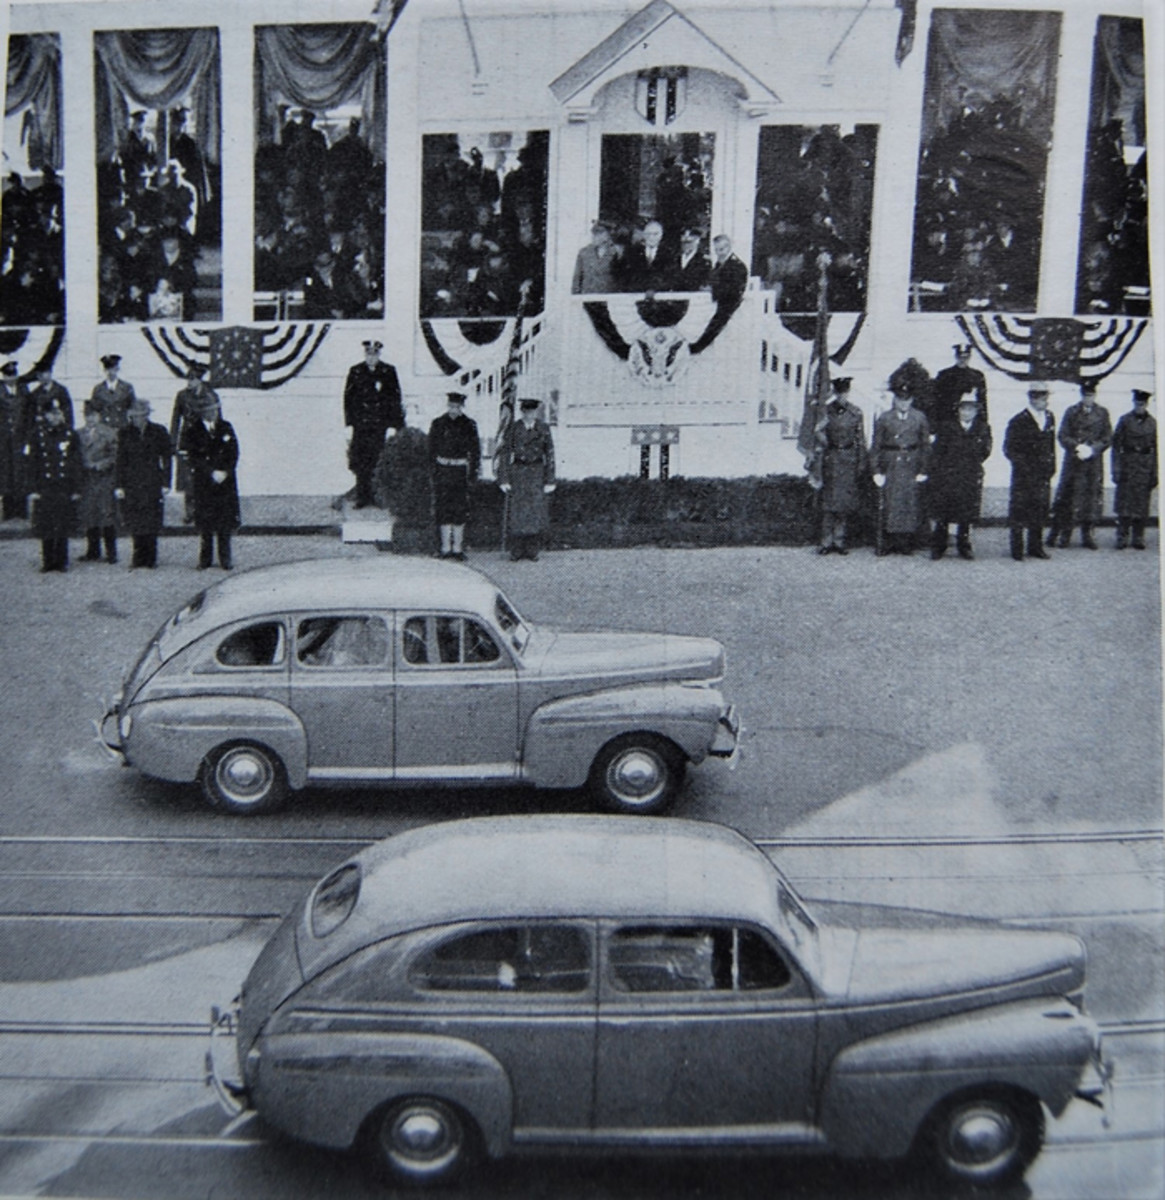 The cars included light-colored 1941 Tudor and Fordor Sedans.